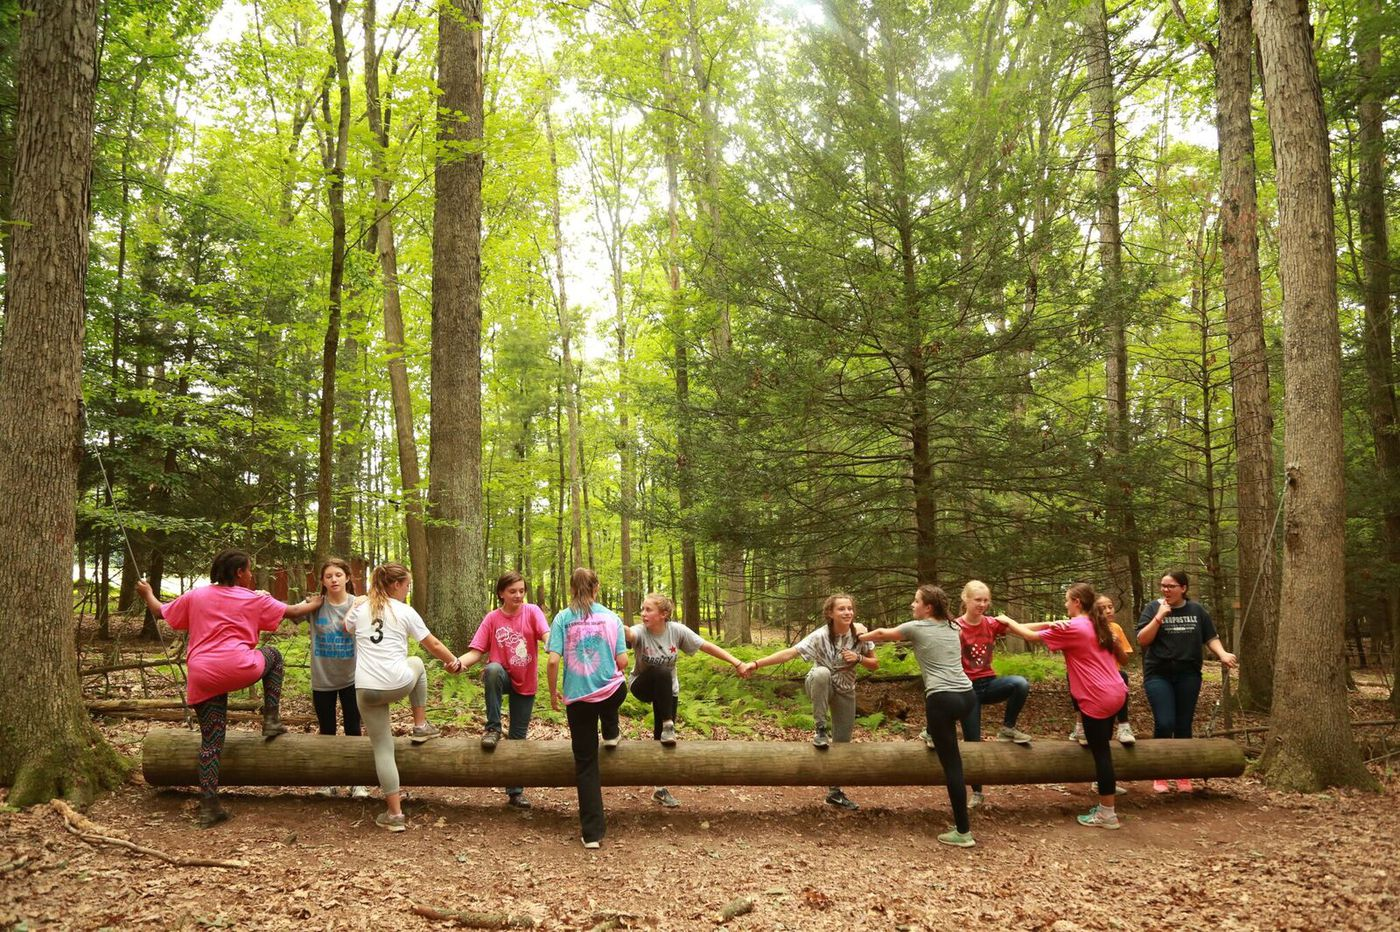 Girl Scouts continues to build strong women leaders | Opinion